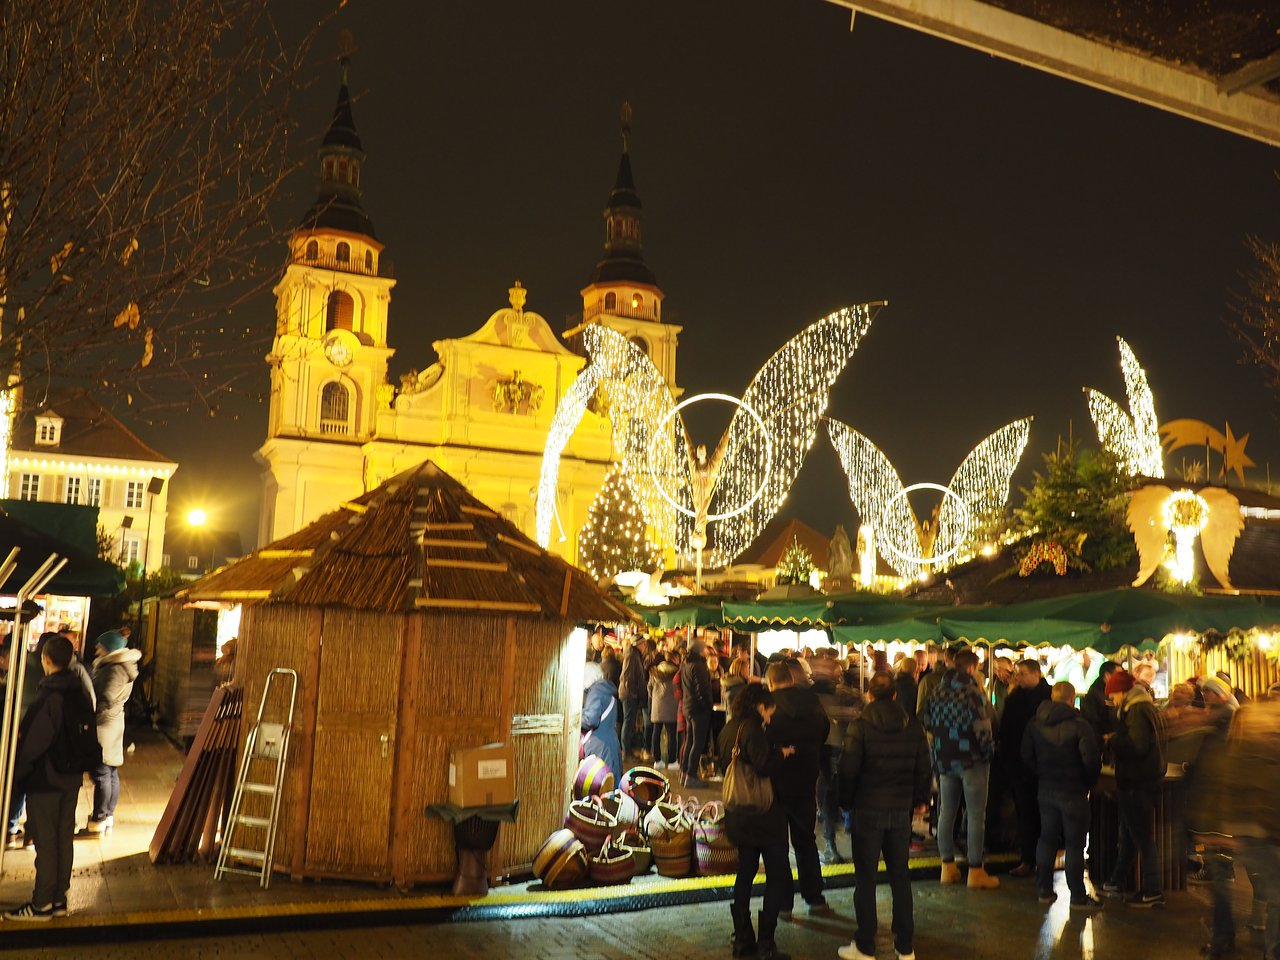 Ludwigsburg Restaurants Open Christmas Eve 2020 Baroque Christmas Market (Ludwigsburg)   2020 All You Need to Know